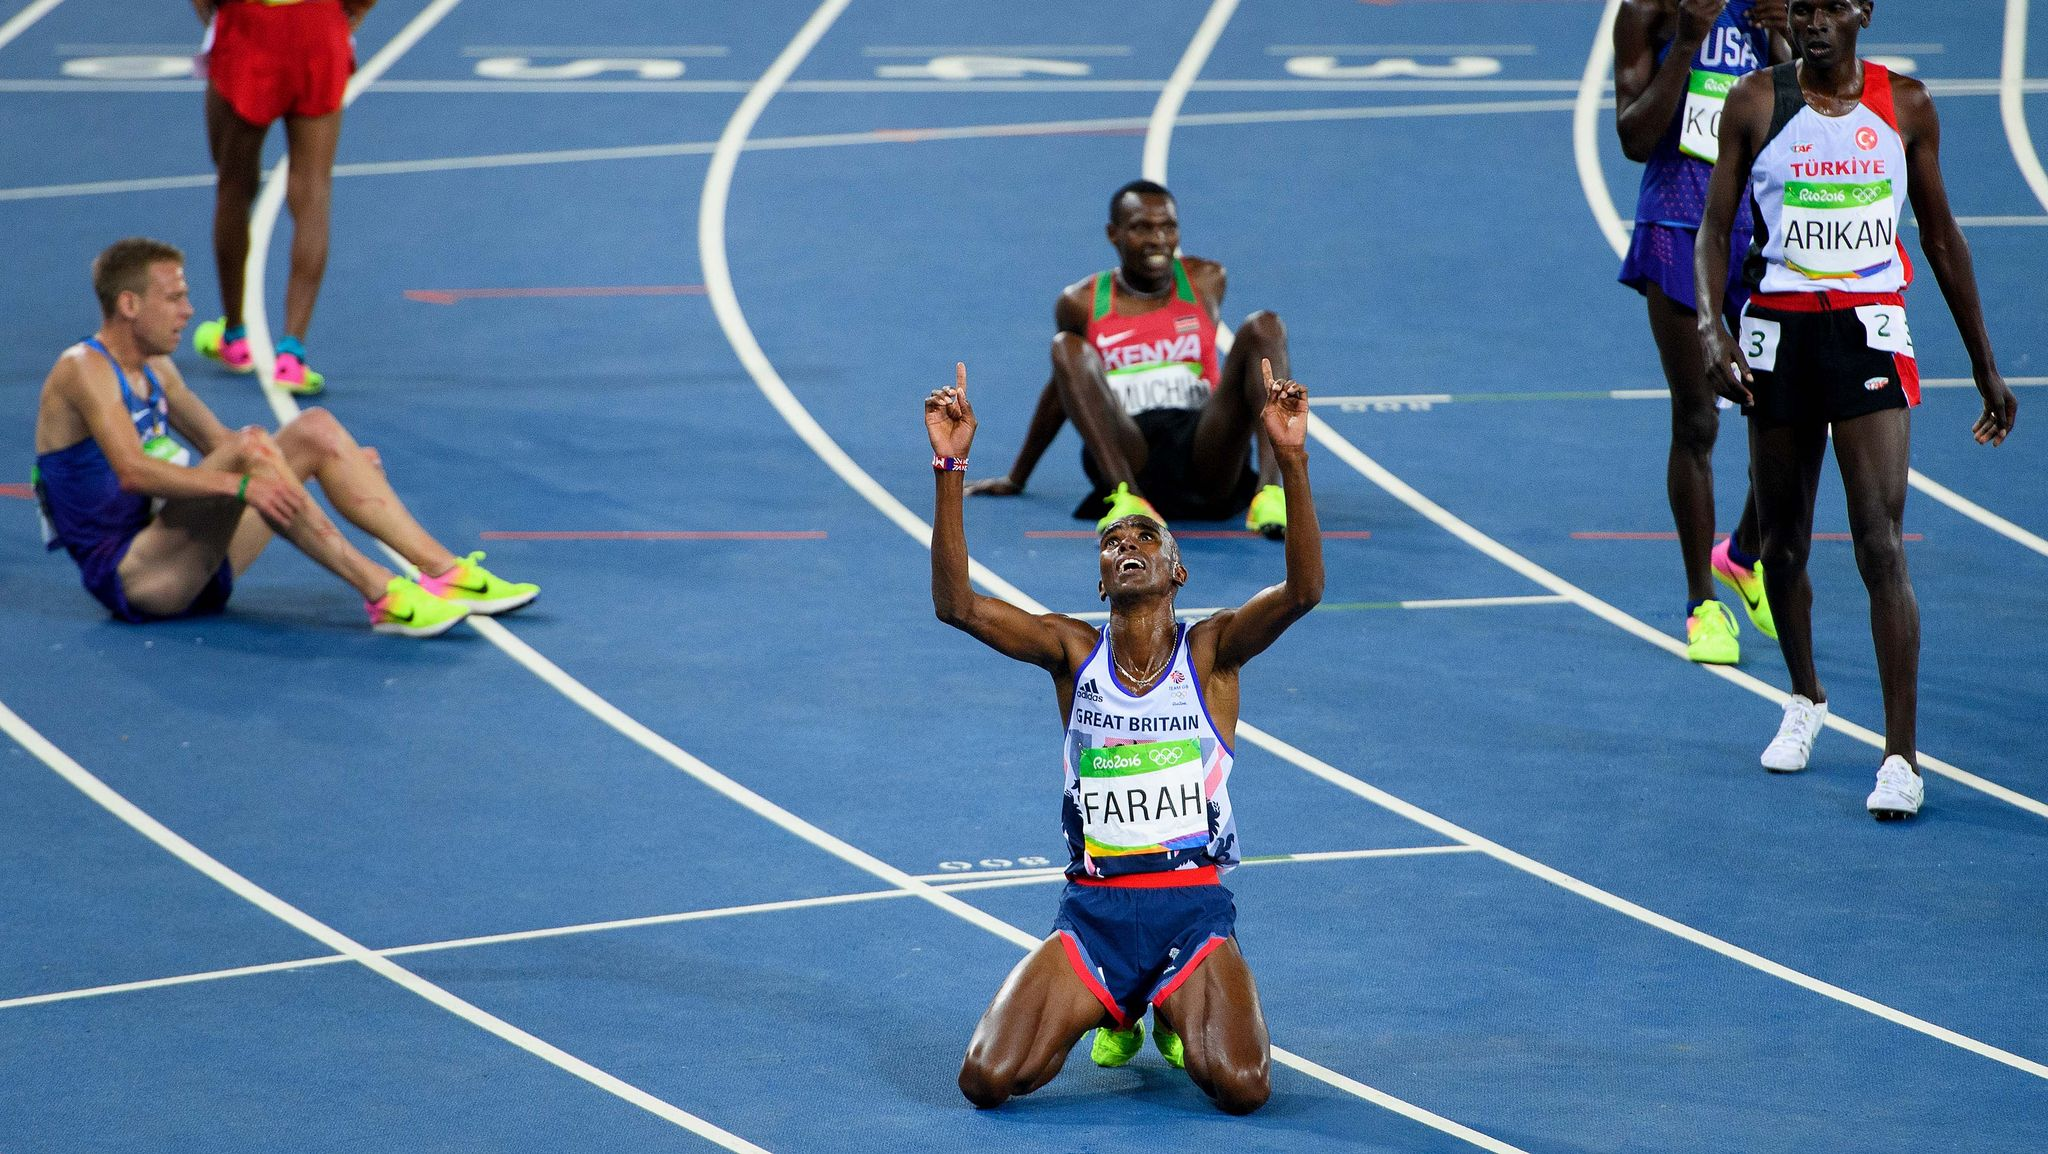 On this day three years ago: Mo Farah won gold in the 10,000m at the Rio Olympics